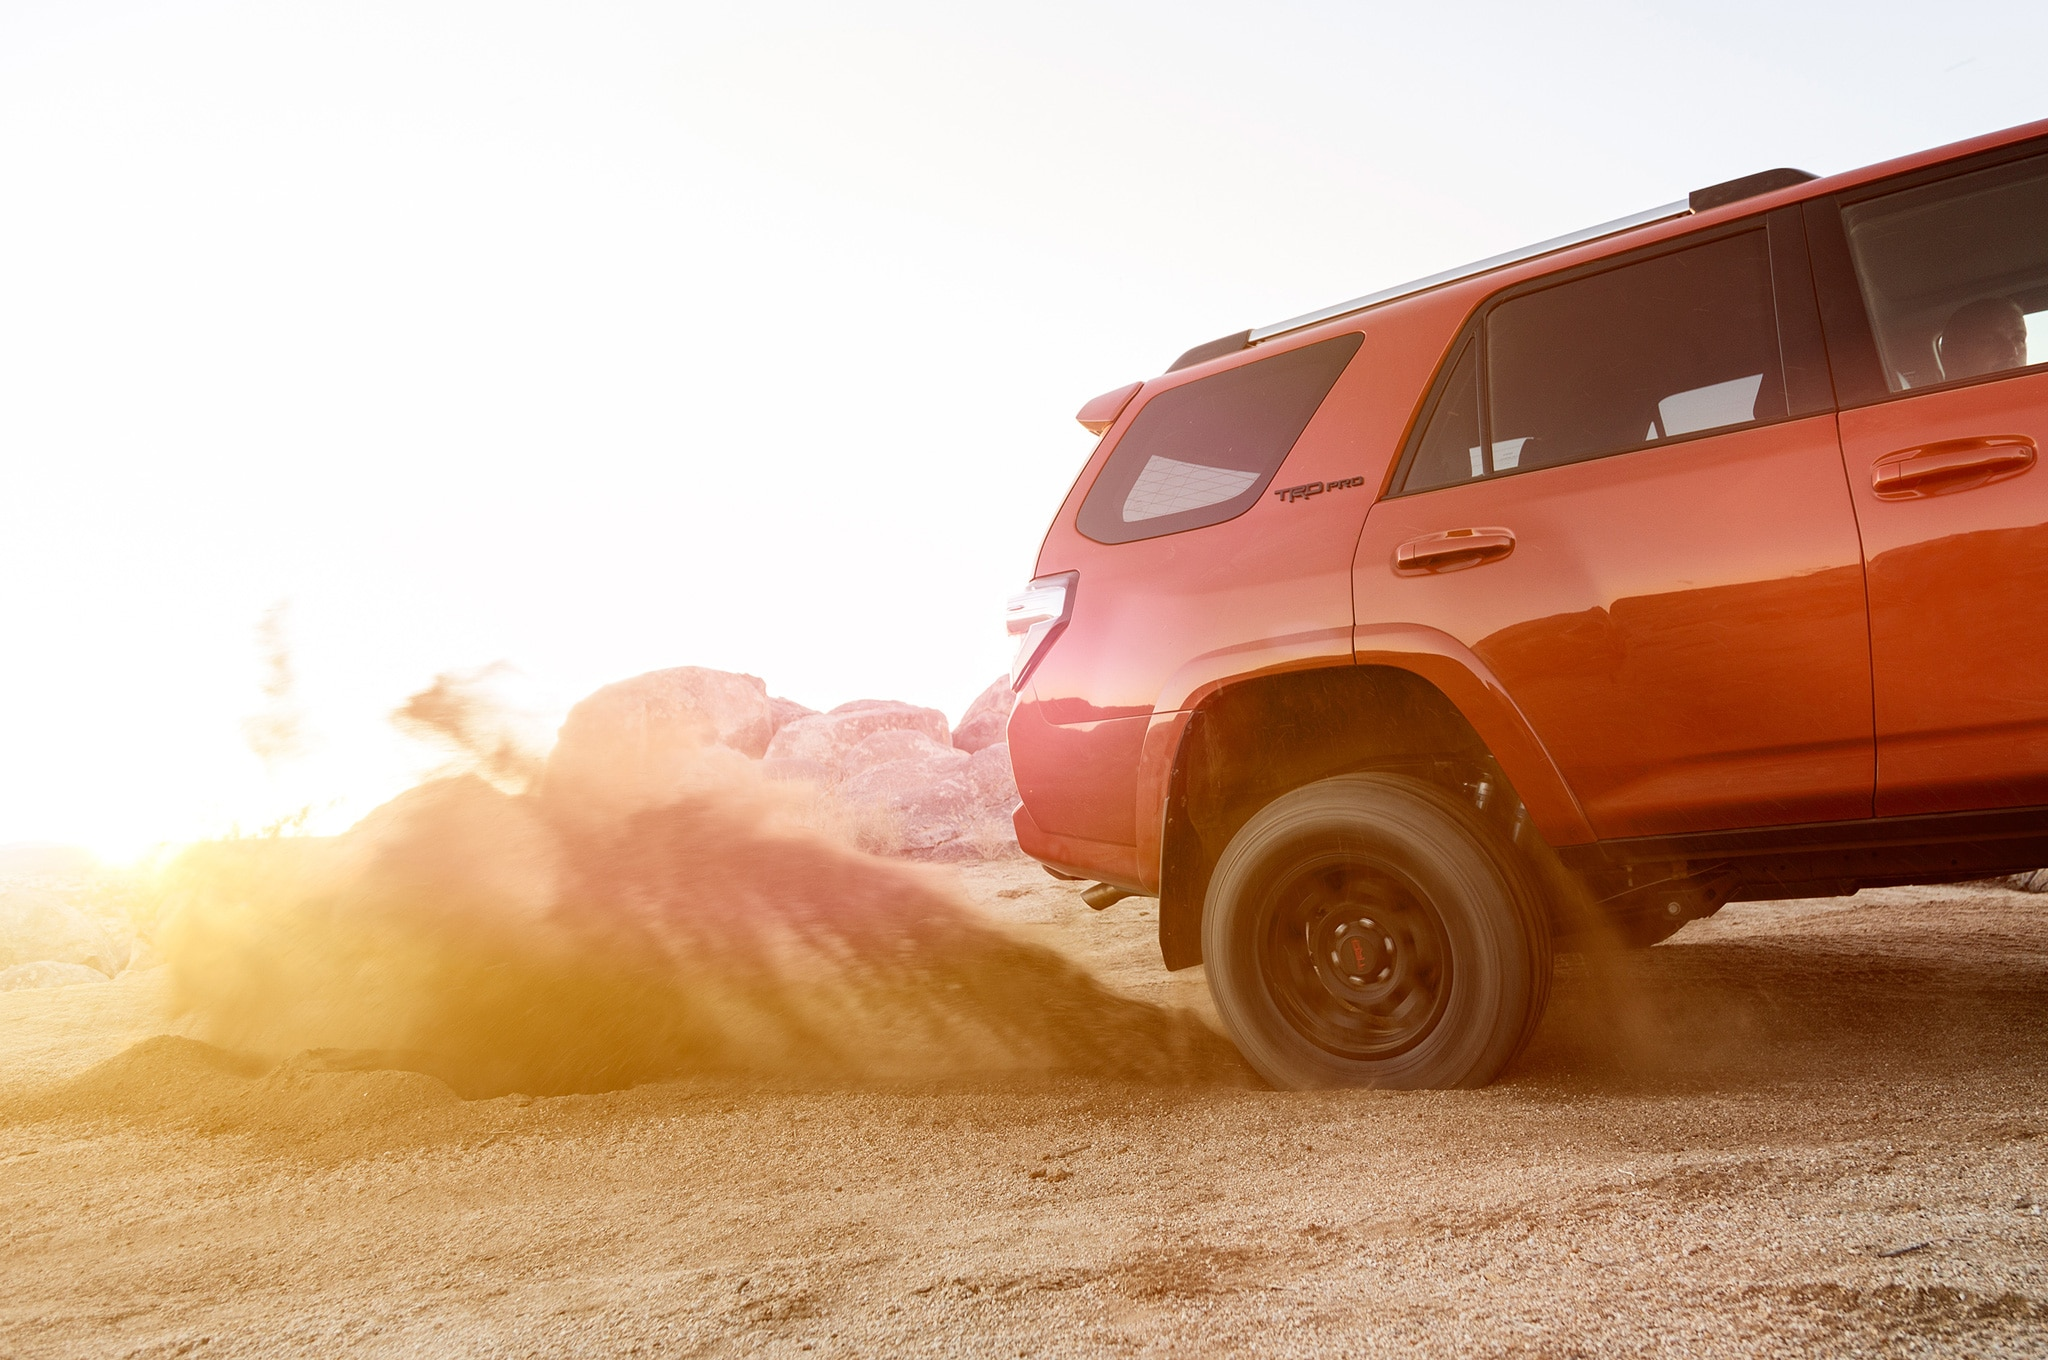 2015 Toyota 4Runner TRD Pro rear side view